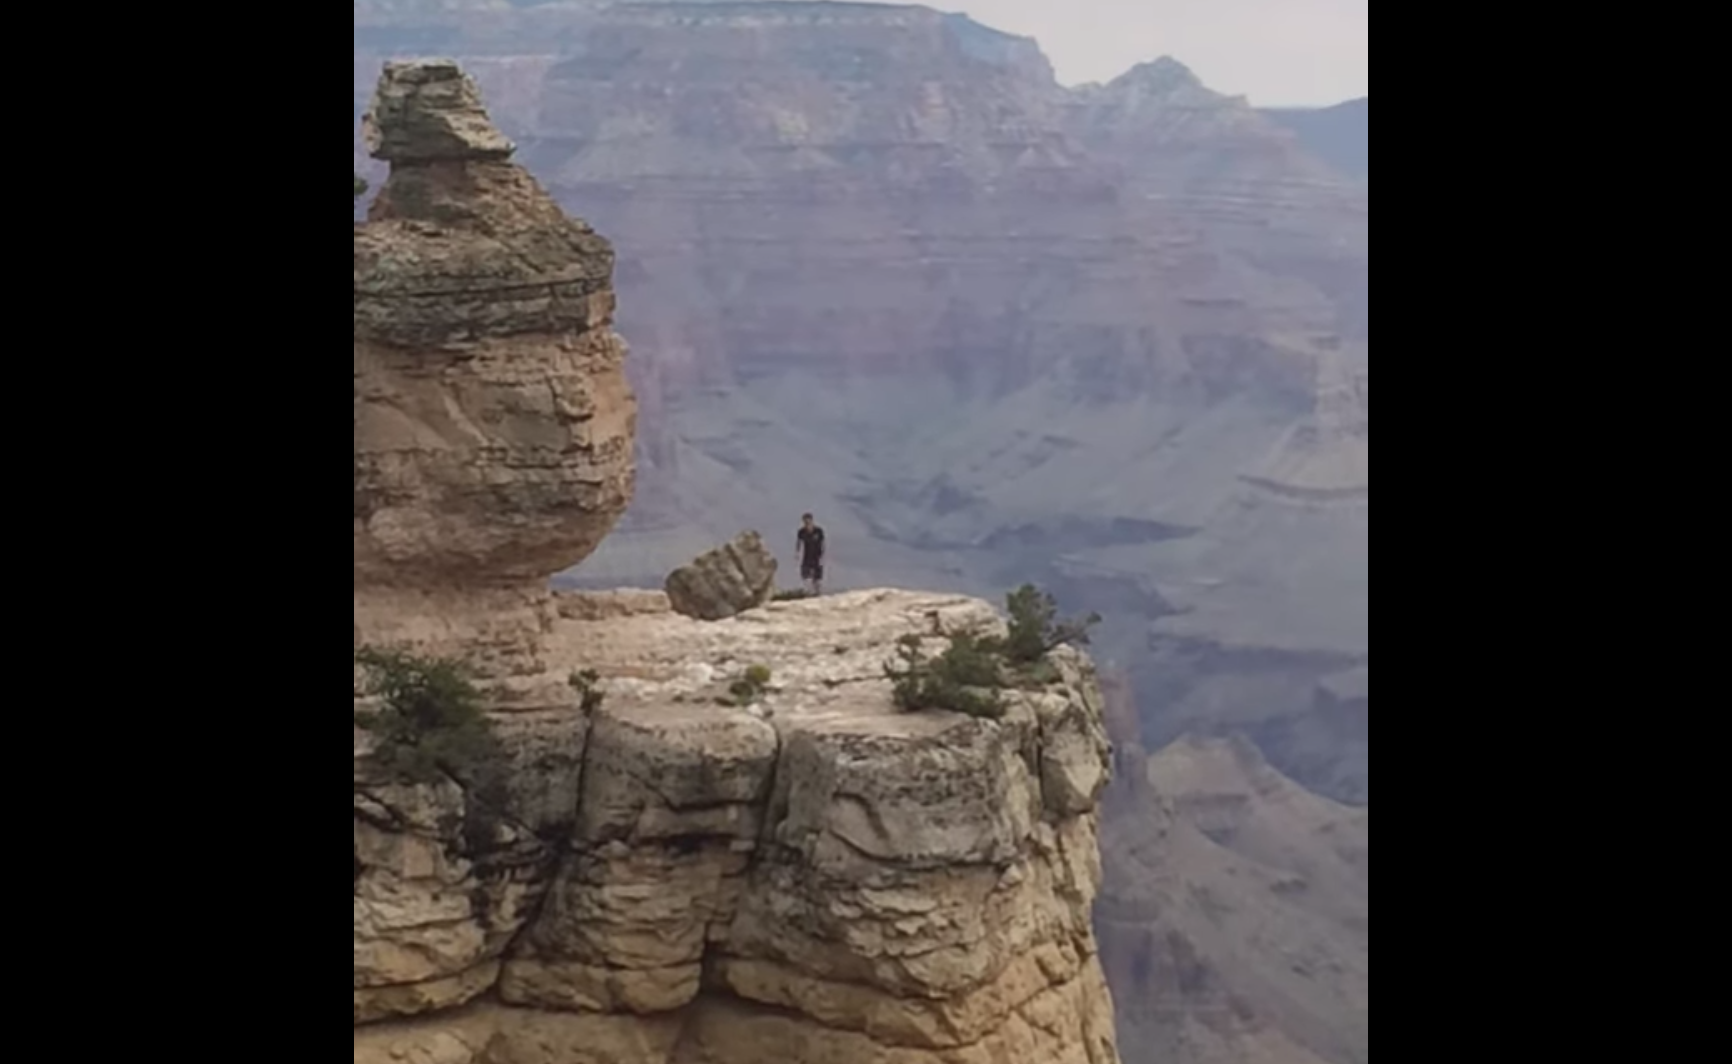 Man With A Death Wish Flagrantly Runs On The Edge Of The Grand Canyon